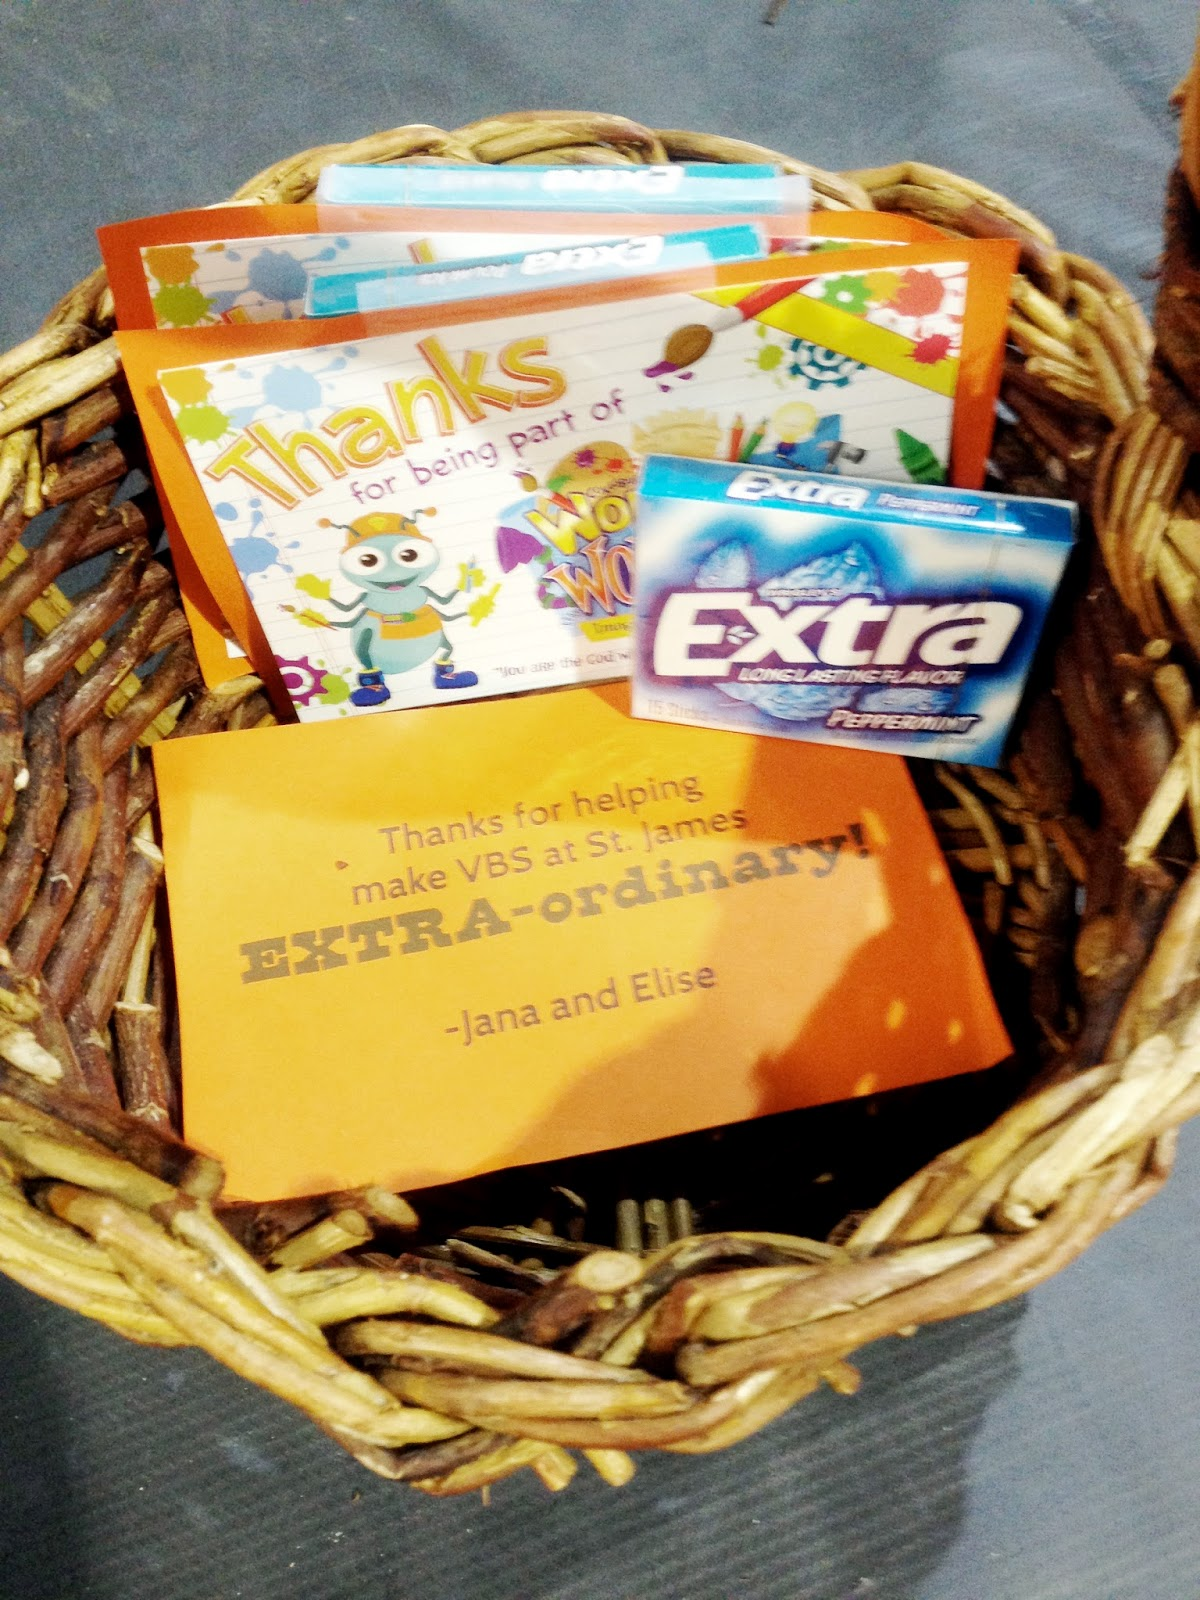 "Dancing Commas :: Workshop of Wonders VBS :: Thank you gift for VBS volunteers ... Extra gum and a note that says ""Thanks for making VBS EXTRA-ordinary!"""